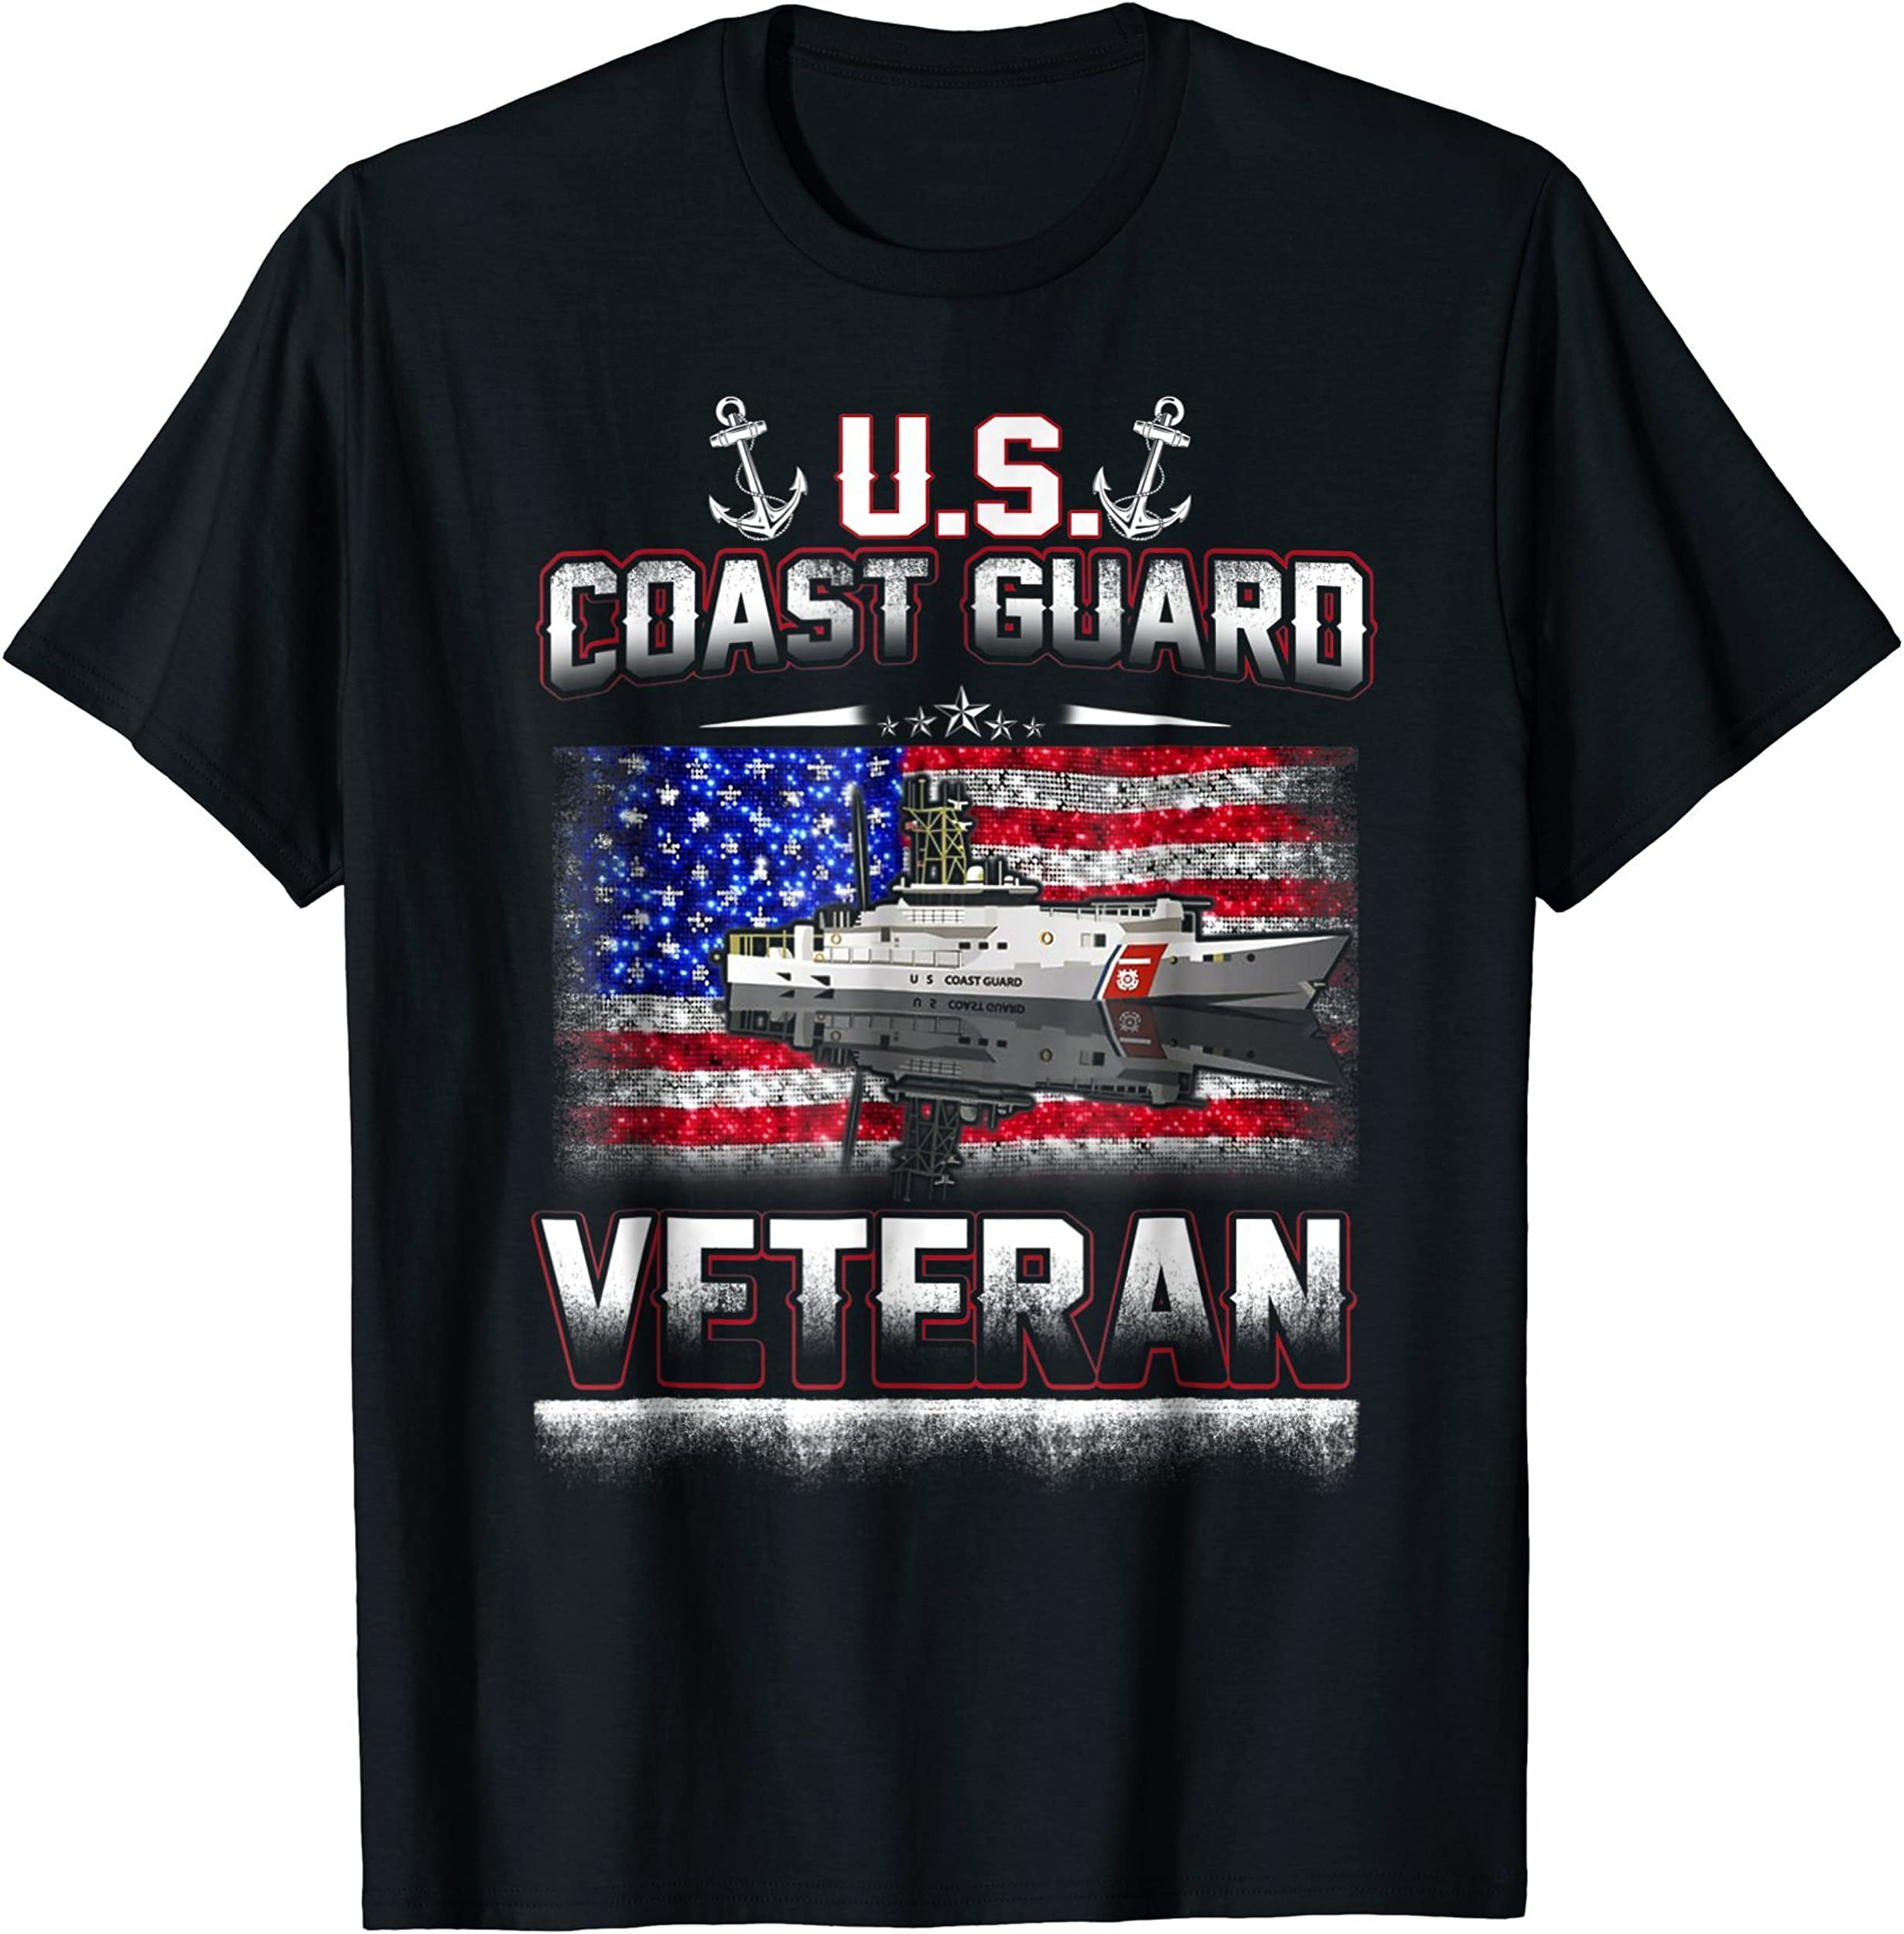 U.S. Coast Guard Veteran Vet Flag T-Shirt